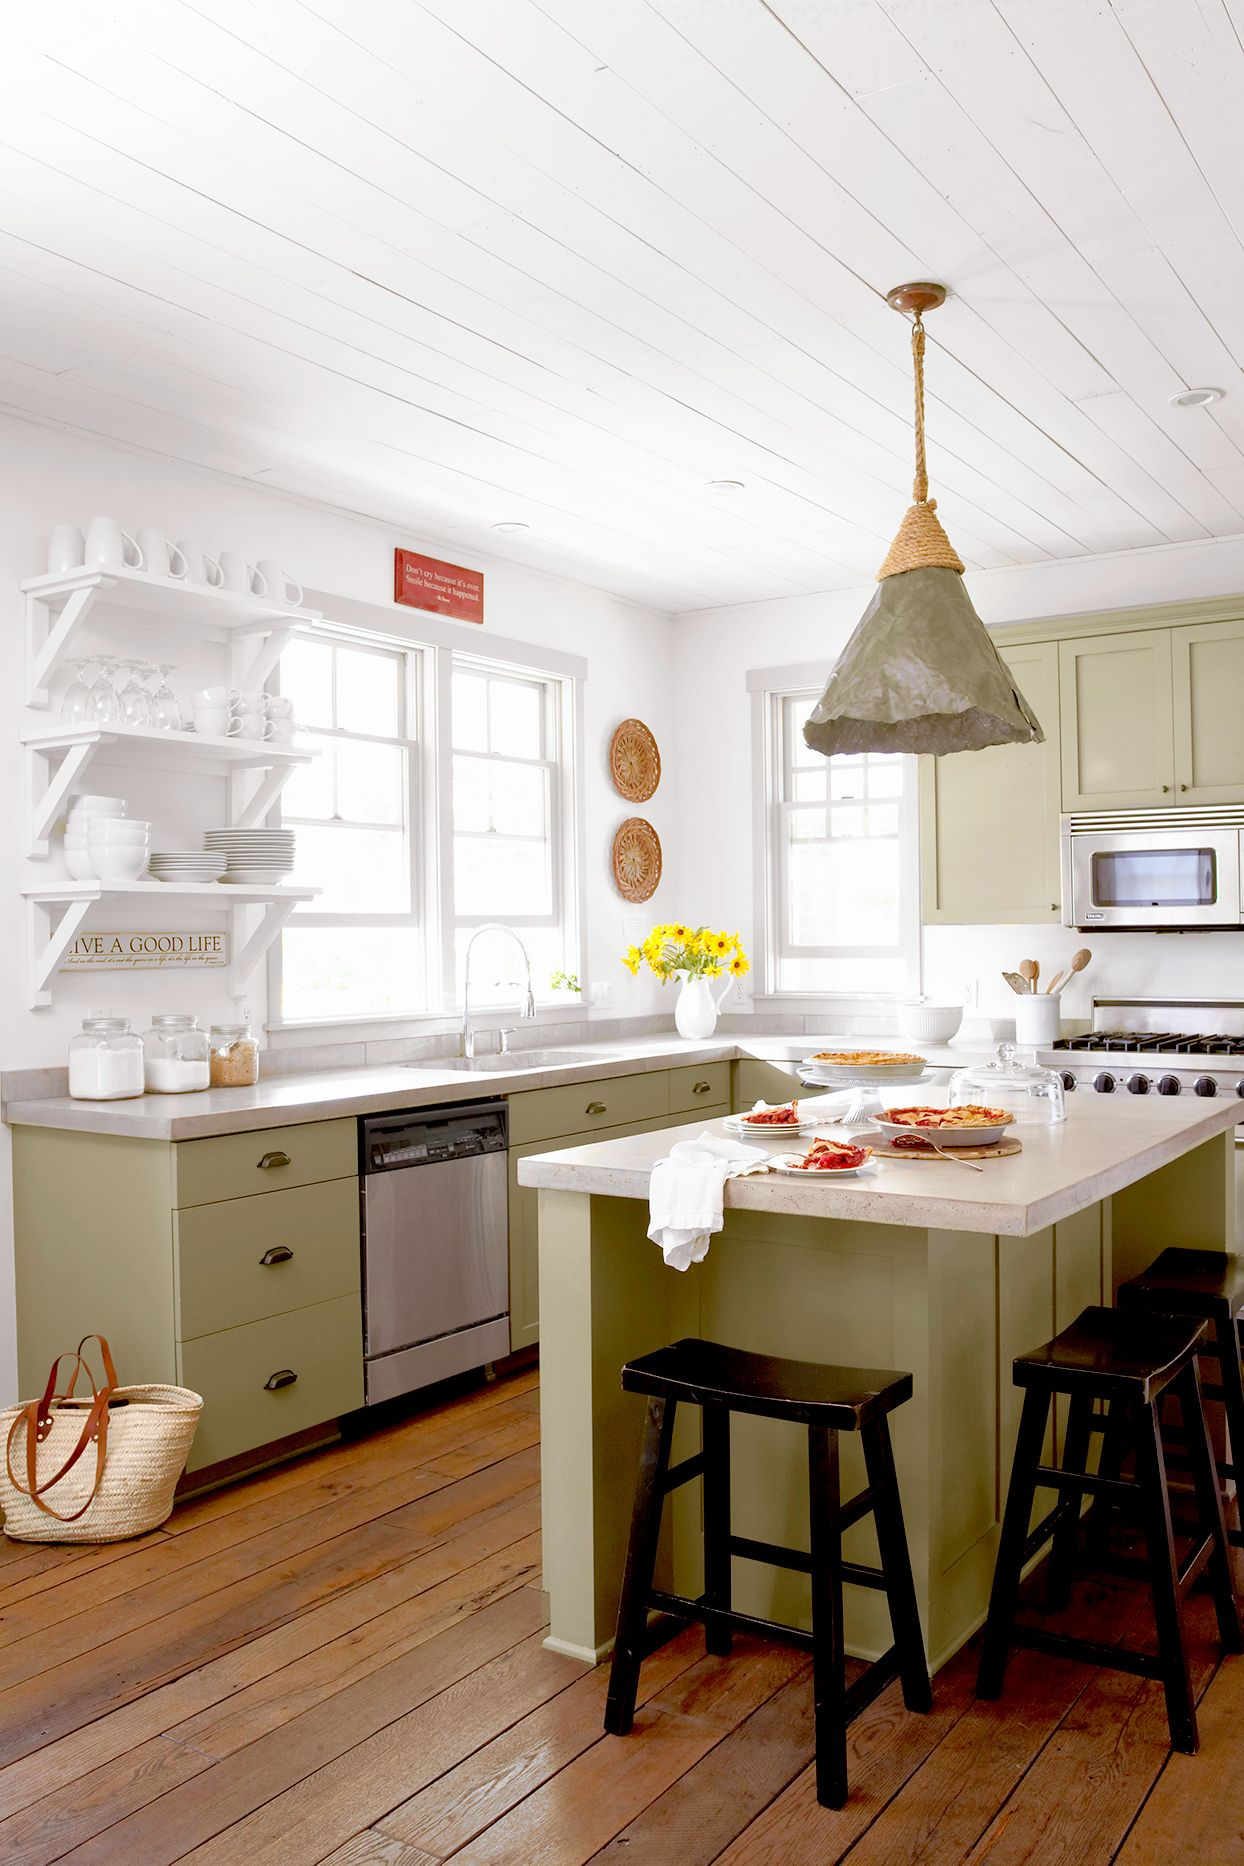 23 farmhouse kitchen ideas for a perfectly cozy cooking space in 2020 kitchens without upper on kitchen ideas simple id=90959